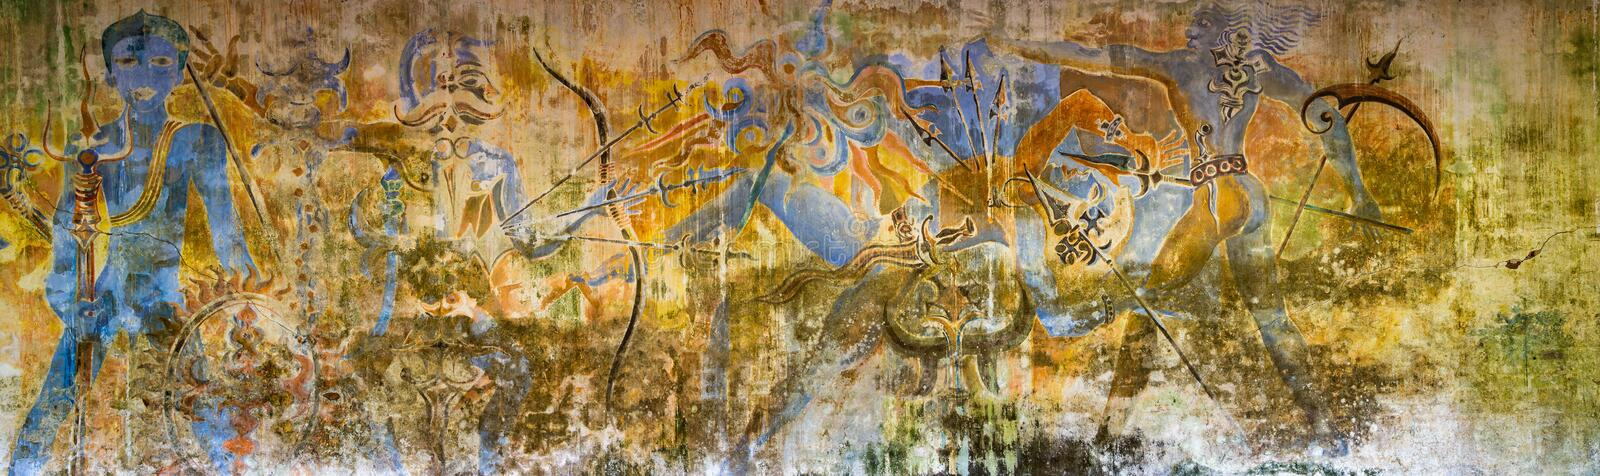 Panoramic wall mural at Bevis Bawa`s  Brief Garden near Beruwala, Sri Lanka. On 1 October 2016 stock photography